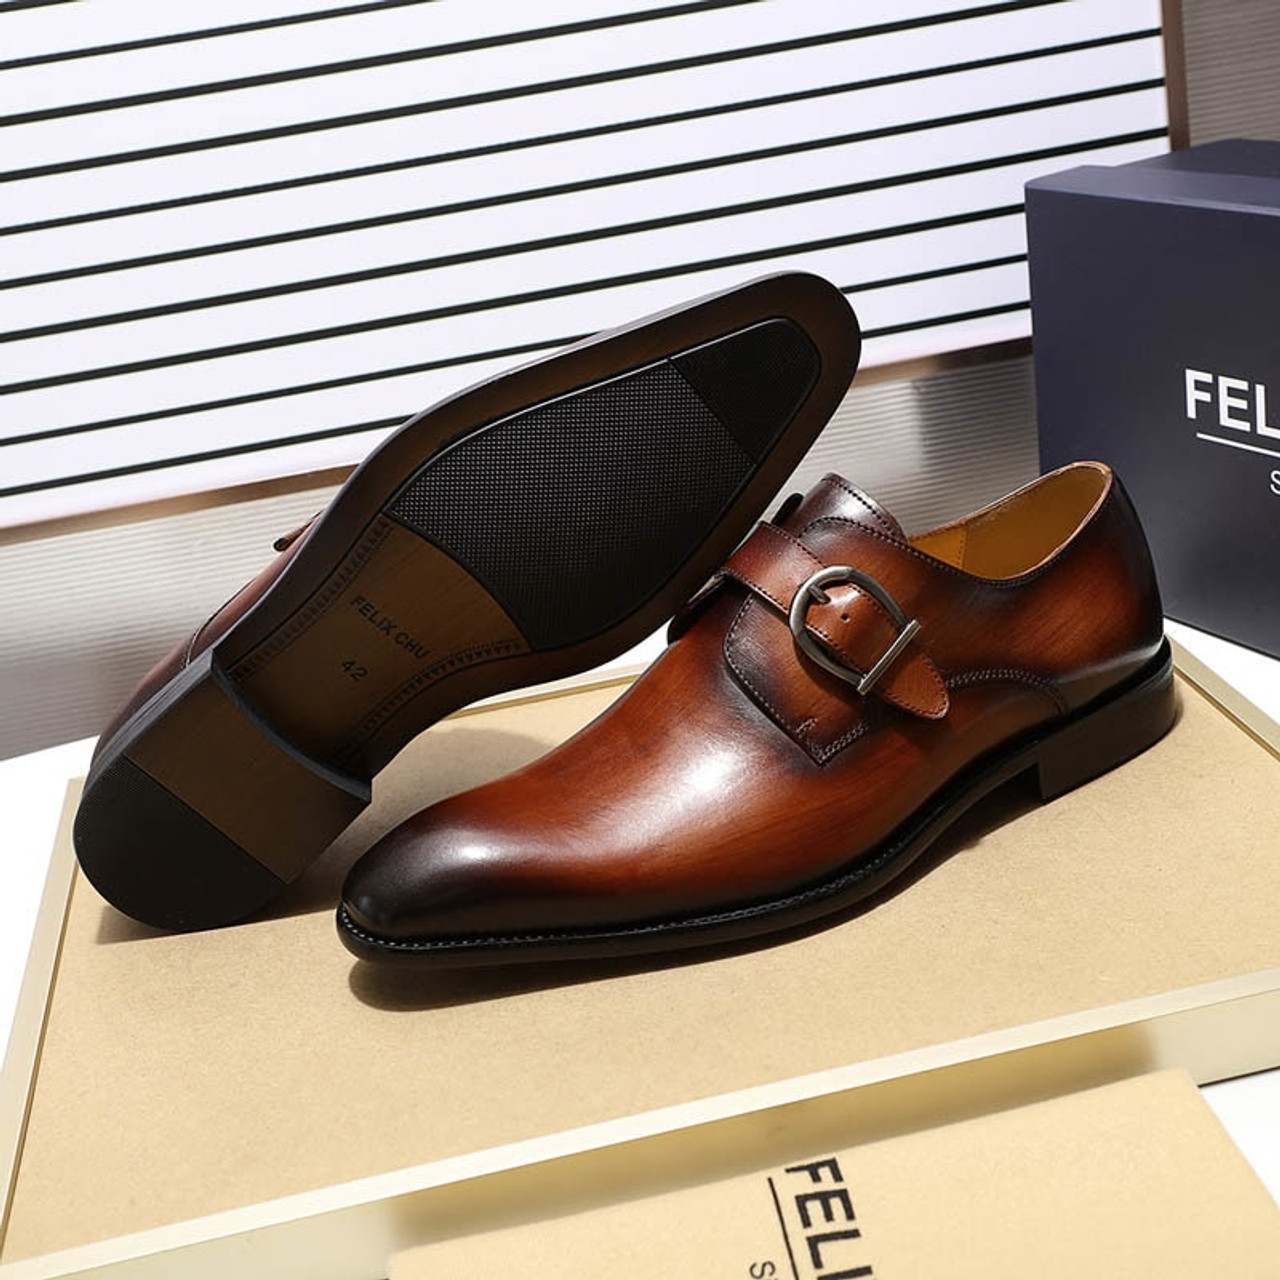 3287ad05c00 ... FELIX CHU European Style Handmade Genuine Leather Men Brown Monk Strap Formal  Shoes Office Business Wedding ...